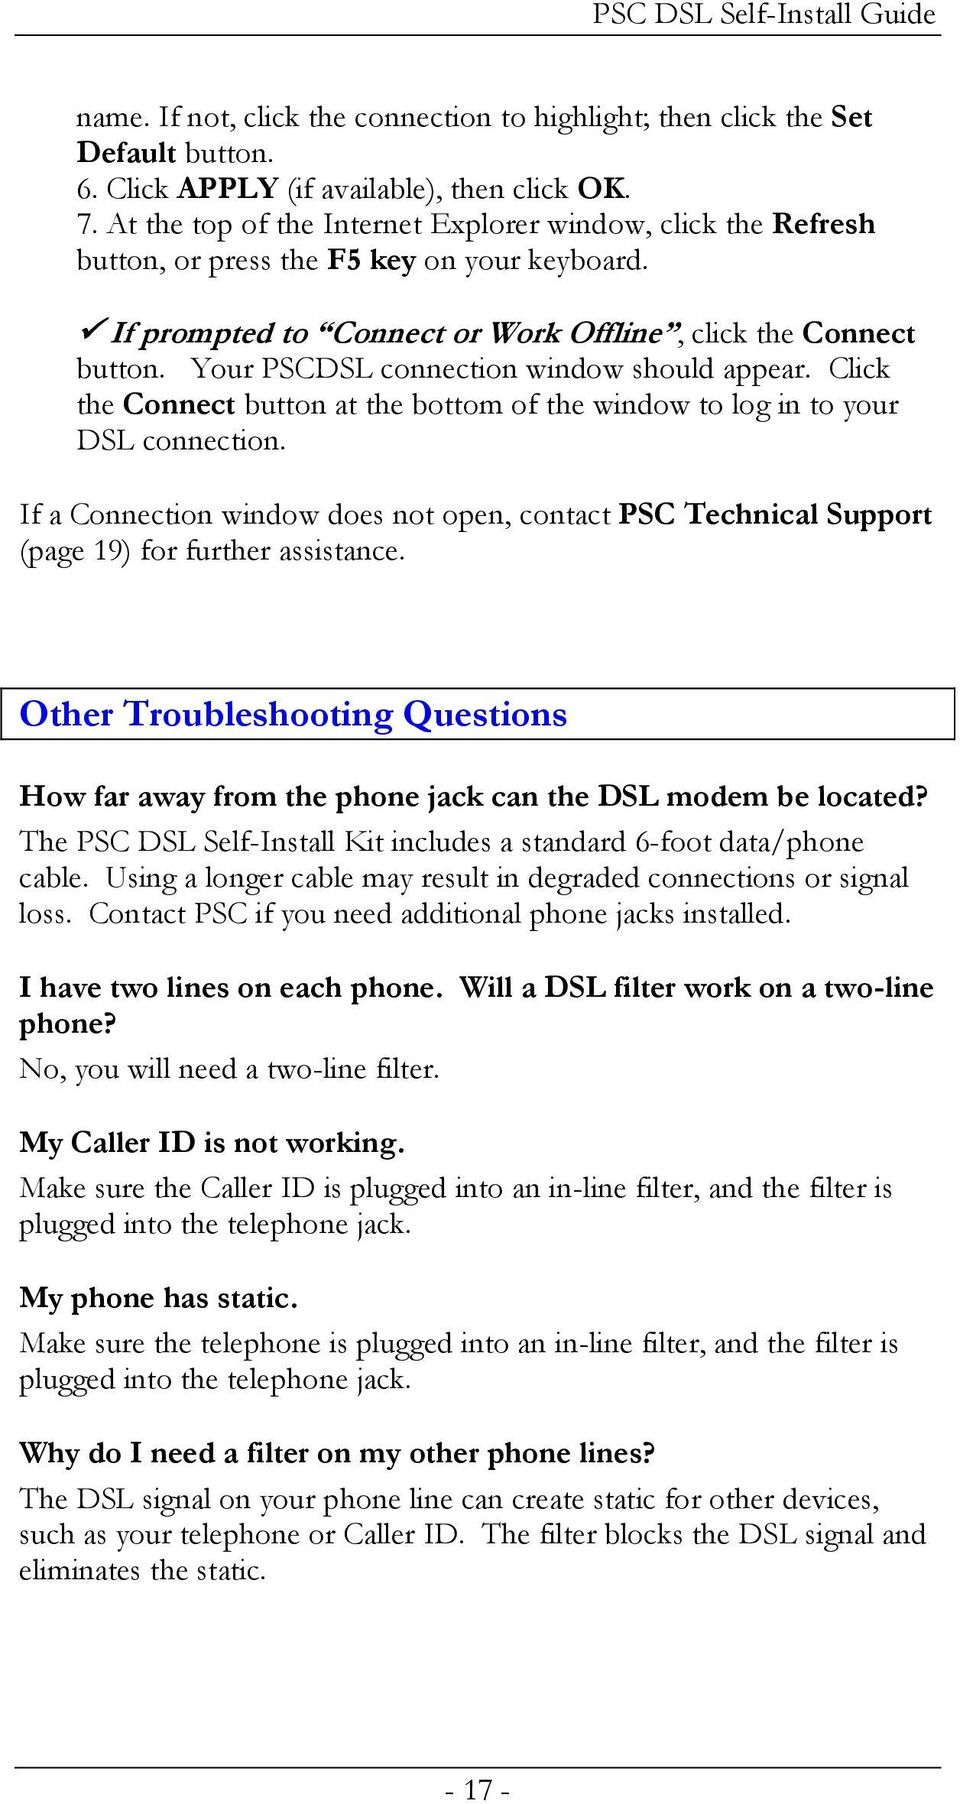 Psc Defective Customer Equipment Return Policy Pdf Jack Wiring For Phone In Addition How To Install A New Line From Your Pscdsl Connection Window Should Appear Click The Connect Button At Bottom Of